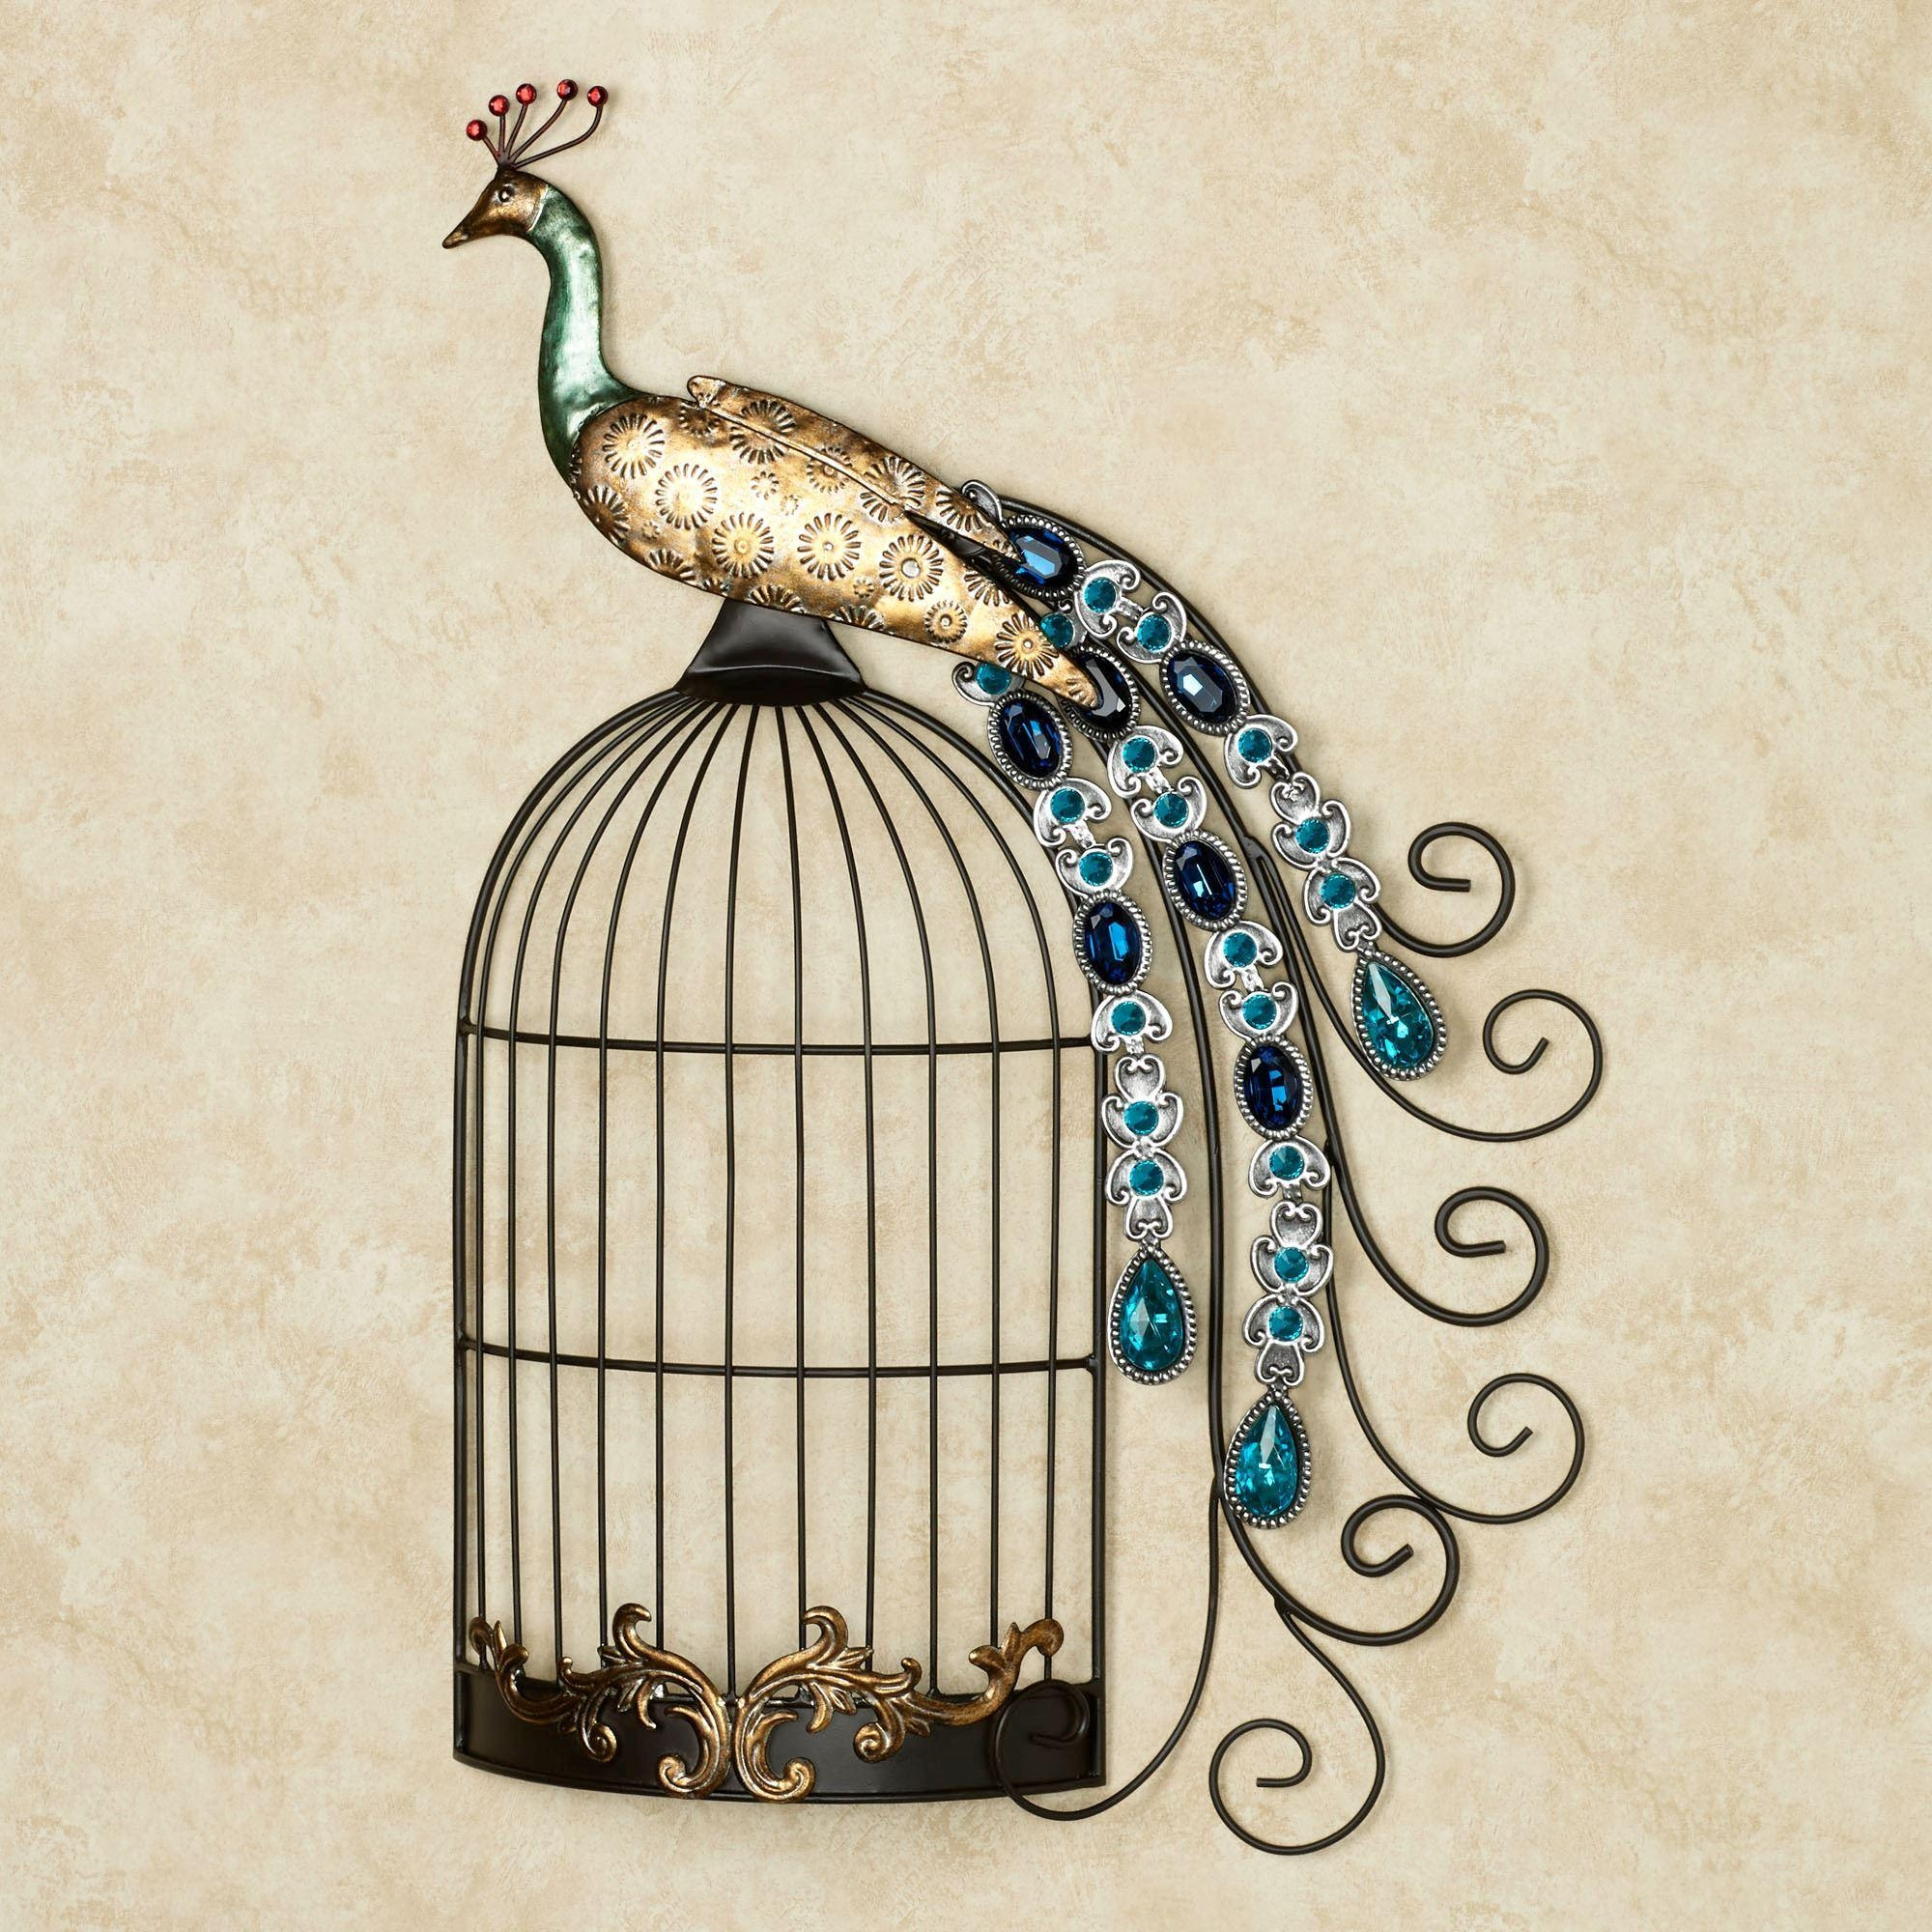 Peacock Jewels On Cage Metal Wall Art With Regard To Peacock Metal Wall Art (Image 13 of 20)